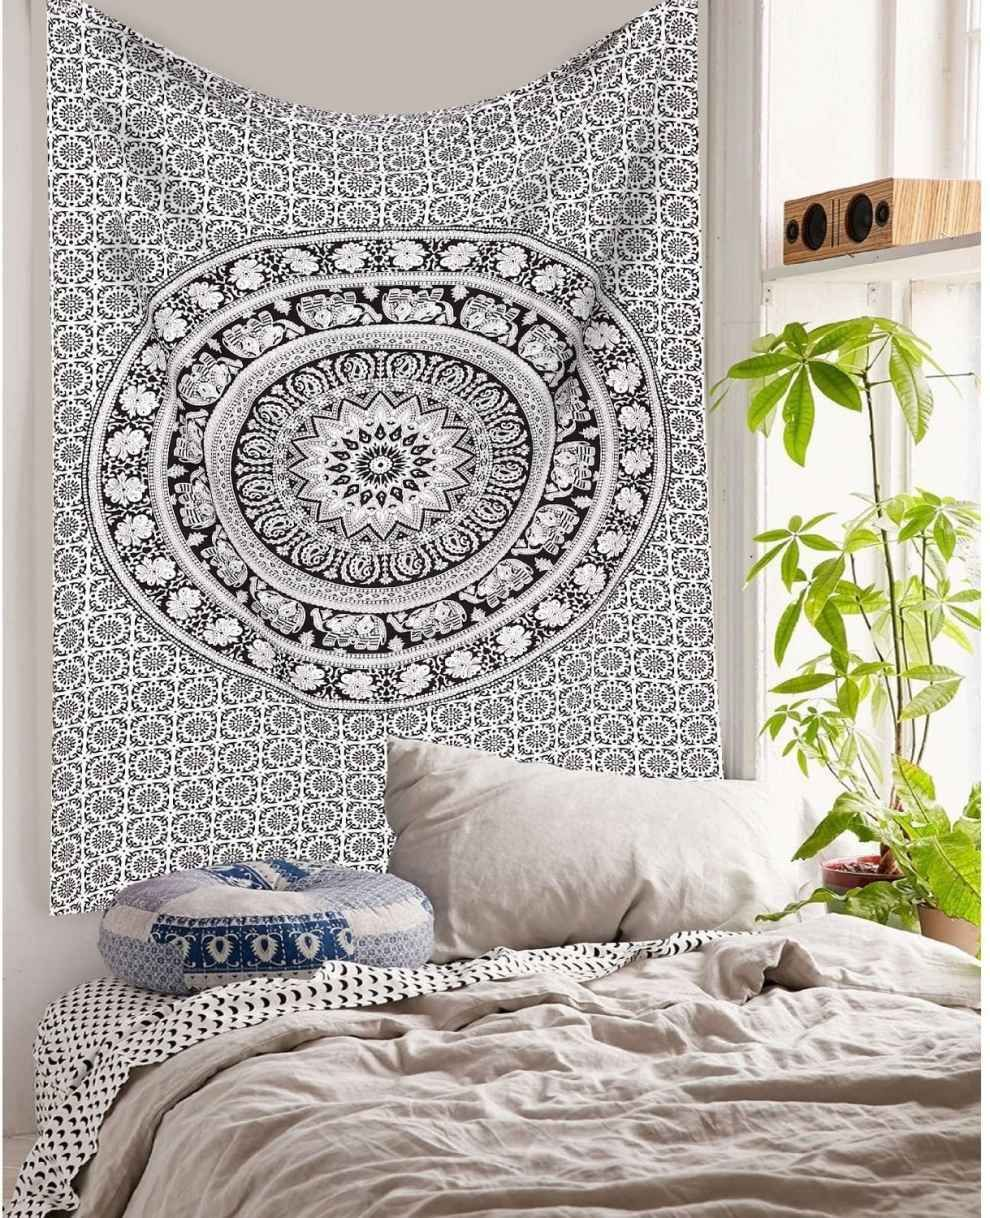 A tapestry that will turn your room into a bohemian hideaway.